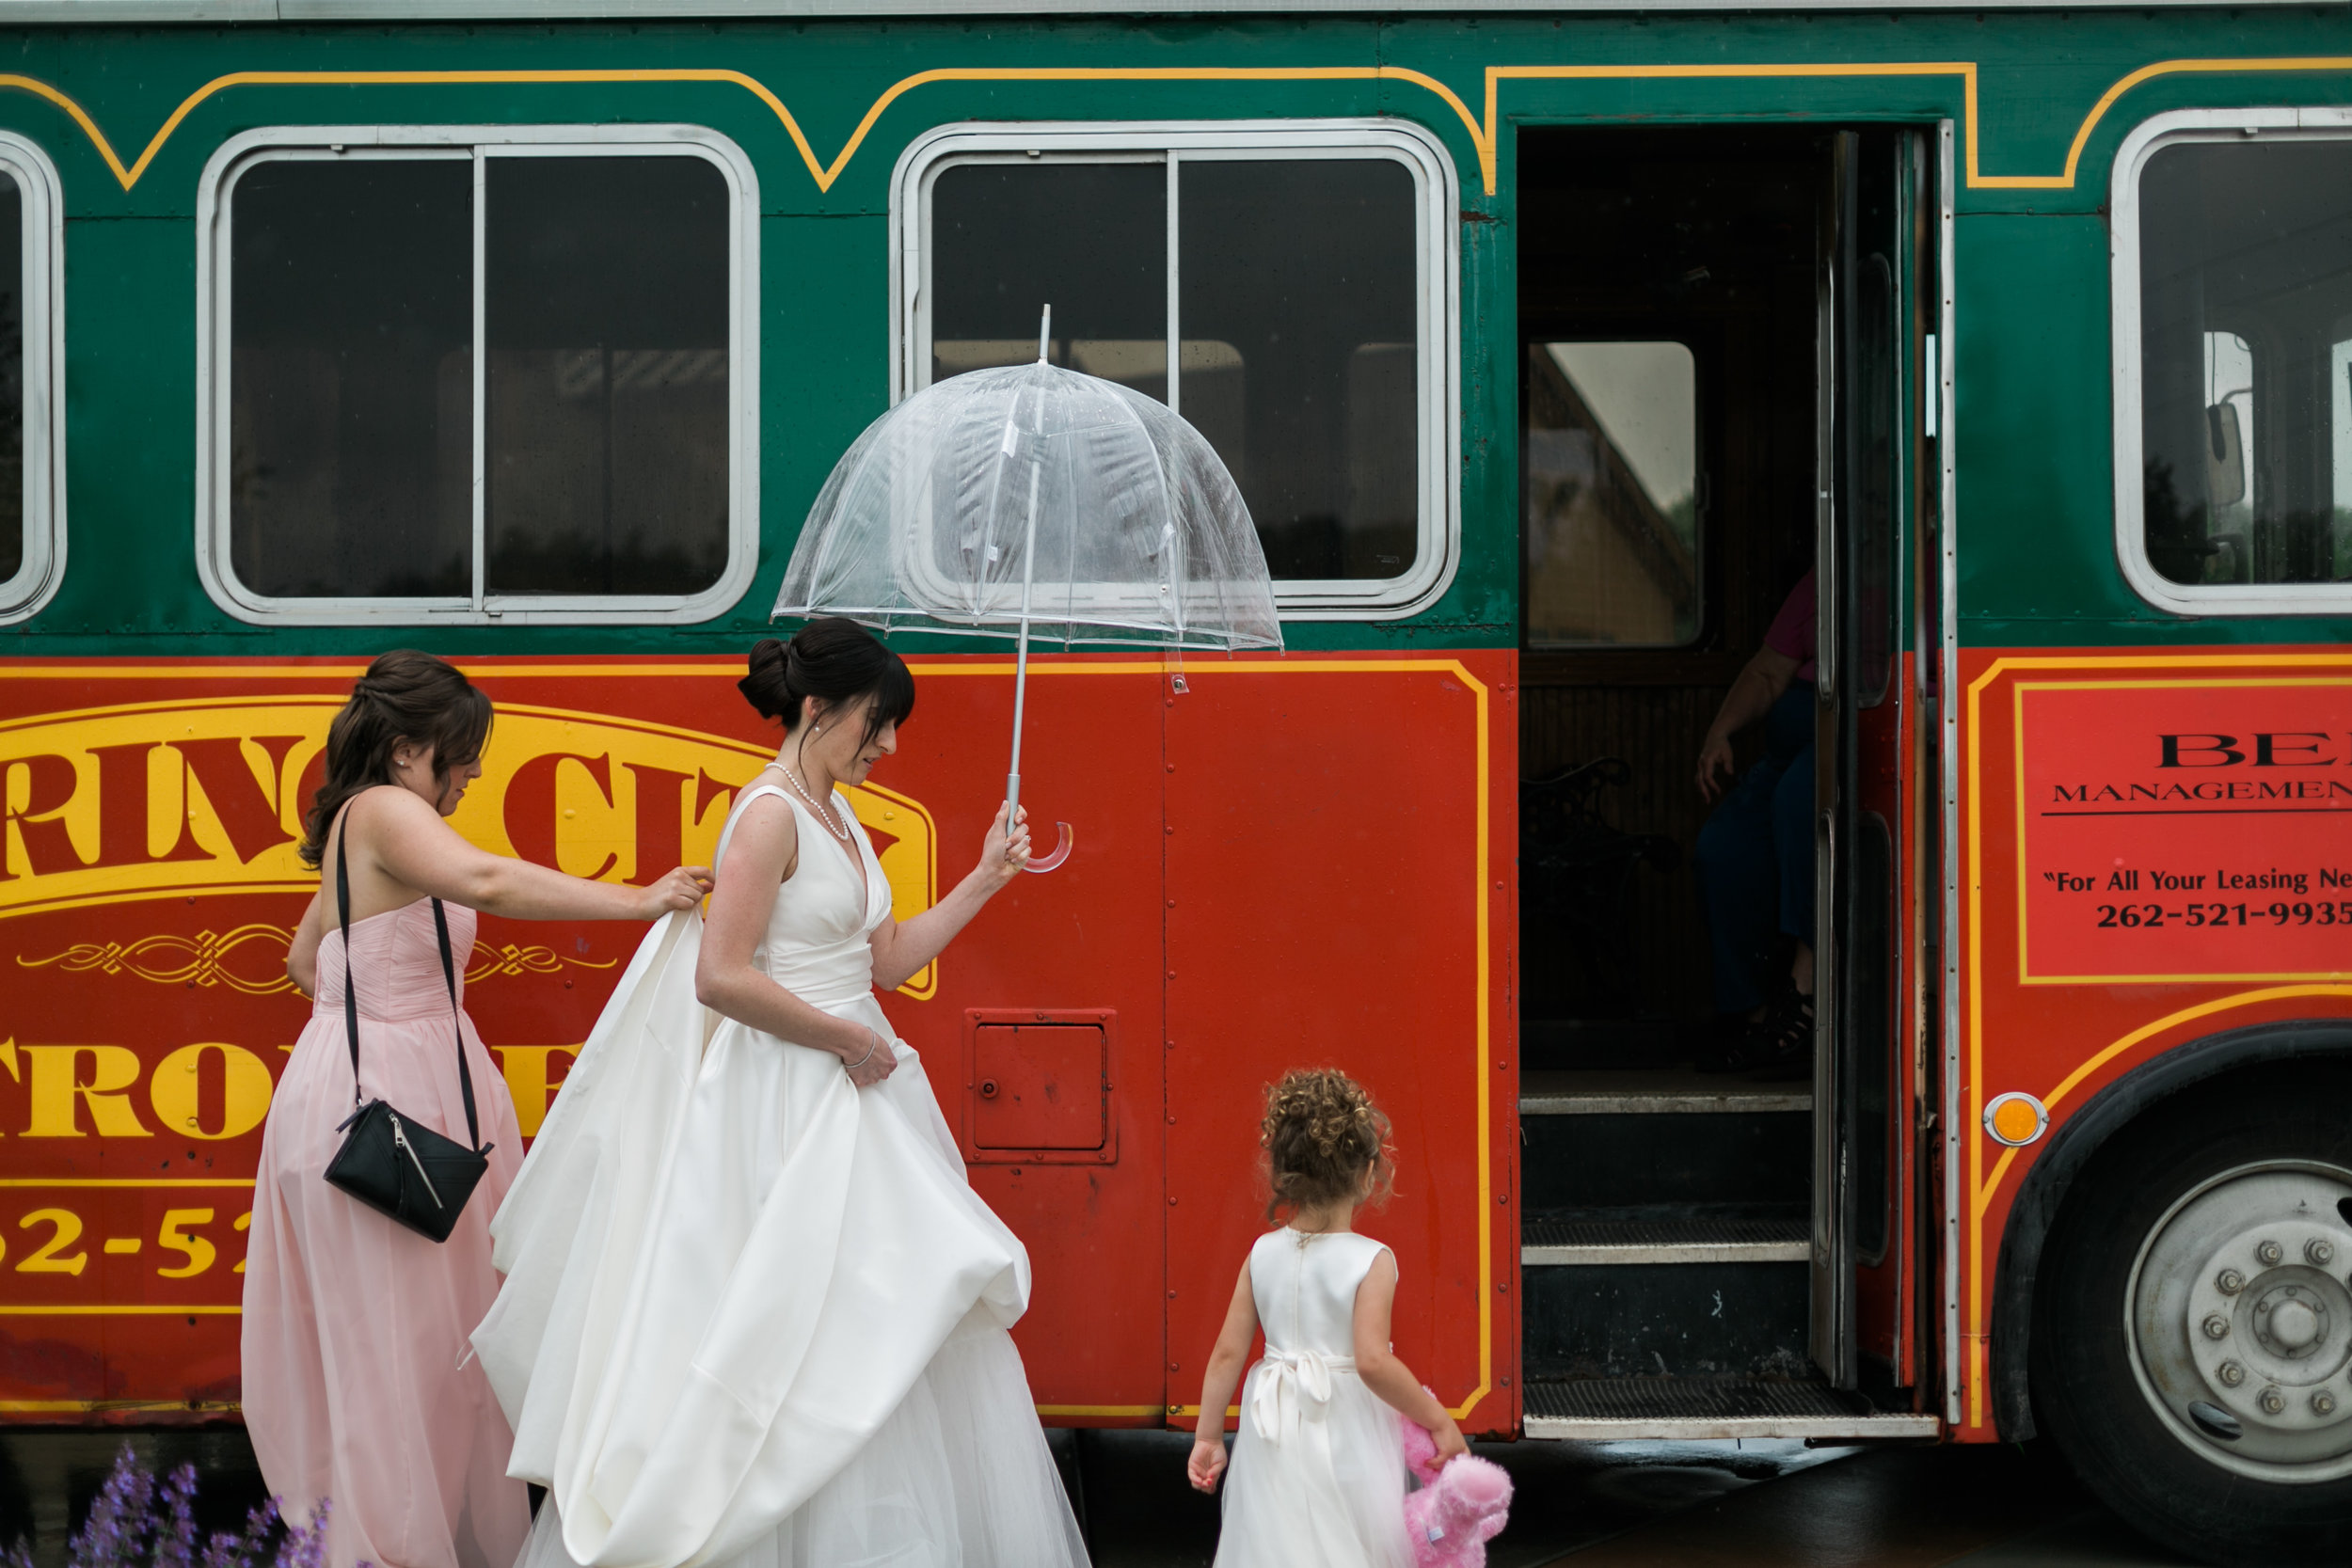 Wisconsin_Wedding_acowsay_Uttke_Photography_party_Bus.jpg